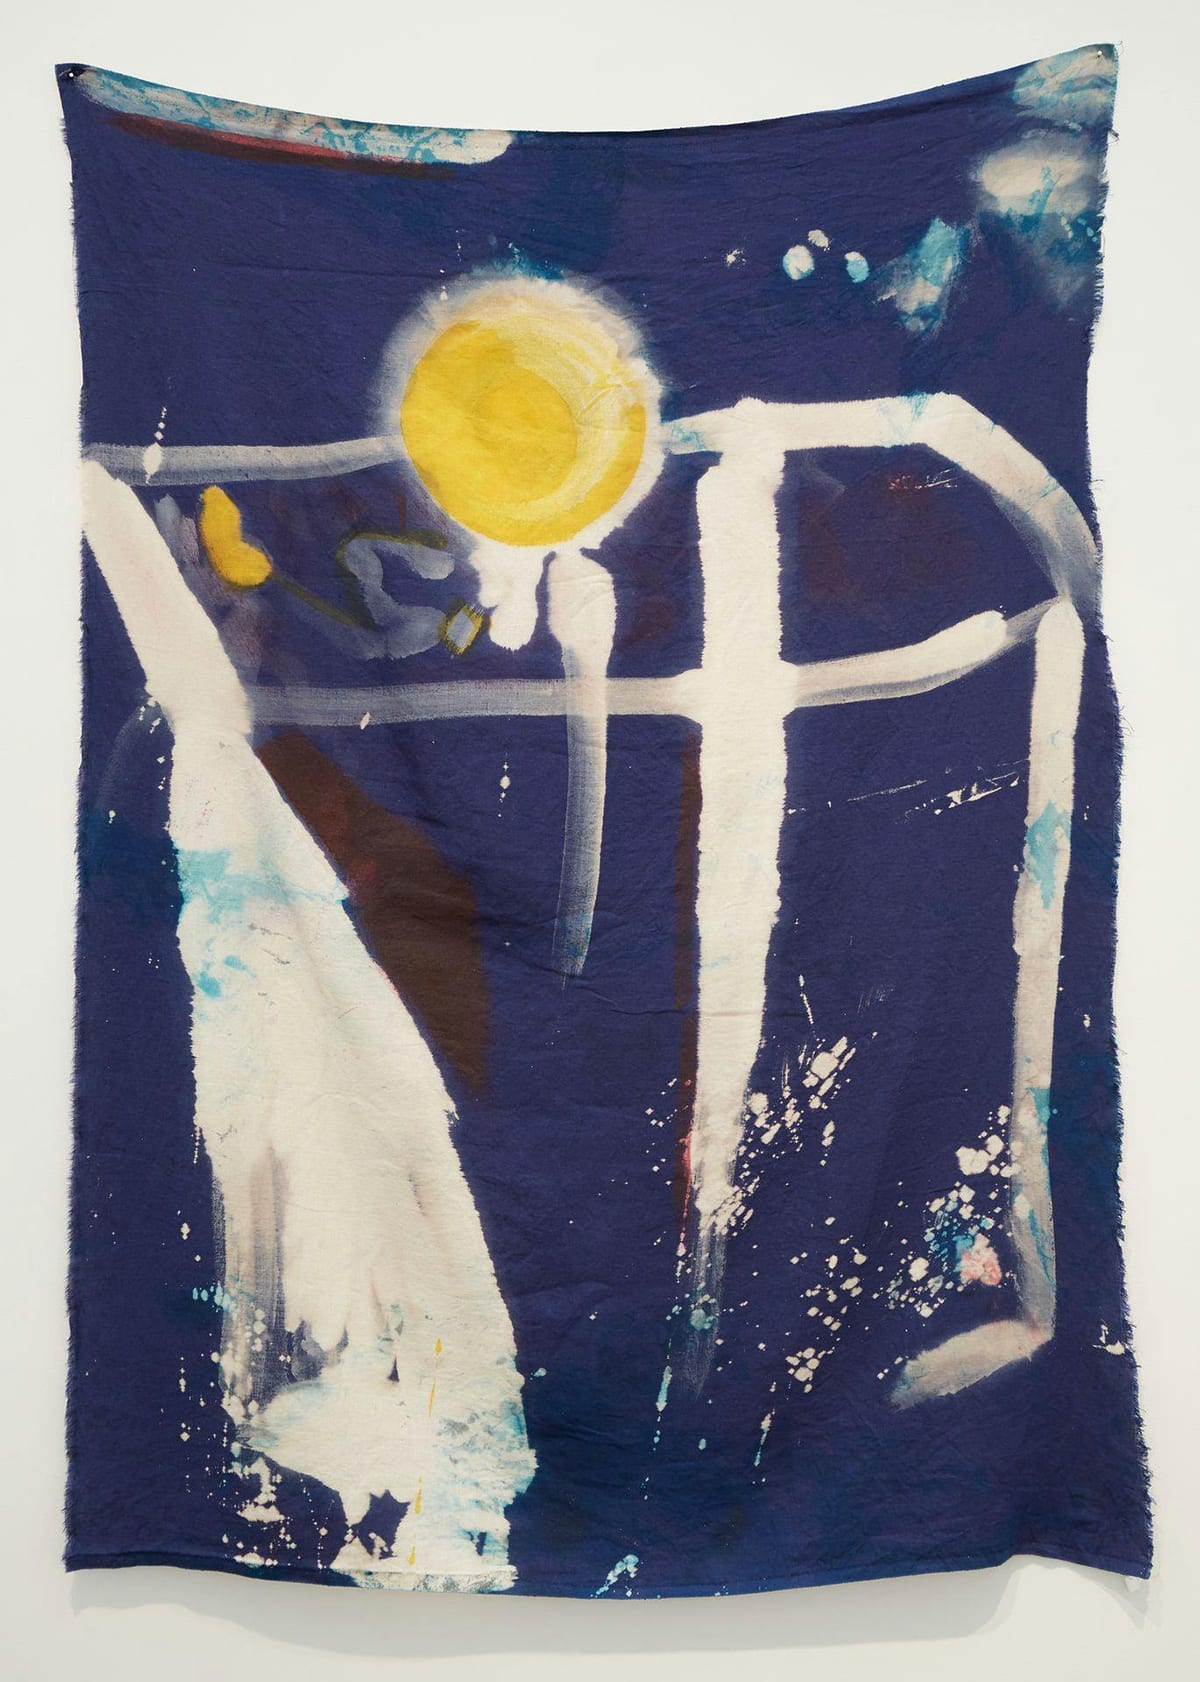 W.L.L.B.L.N.D.N.E.S., Kristan Kennedy, 50 x 42 inches, ink, dye, bleach on linen. A photo of a vertical rectangular length of cloth hung from the upper corners with the rest left to hang freely. The mostly indigo cloth has a round bright yellow circle near the top at center. The circle shows uneven color with a crescent shape suggesting removed color on its right side. Around the circle, a halo of white bleaching radiates outward from the yellow sphere. Larger areas of white drip from the bottom of the sphere. To the left is a short, thick blob of the same bright yellow. A horizontal bleached line runs behind the circle from left to right angling downward at far right. Just to the right of the sphere two thick bleached lines run vertically ending a third from the bottom in splatters. They are bisected by another horizontal line under the sphere. At left starting at the two horizontal lines, a thick bleached area travels downward widening into a wedge shape and continues to the very bottom of the fabric. It is unevenly bleached with some indigo showing through. White splatter marks decorate the bottom third of the cloth. At the upper right corner of the work, splotches of white are overlaid with a lighter blue color. The fabric is wrinkled and worn with frayed edges and loose threads. The borders of the cloth are uneven.